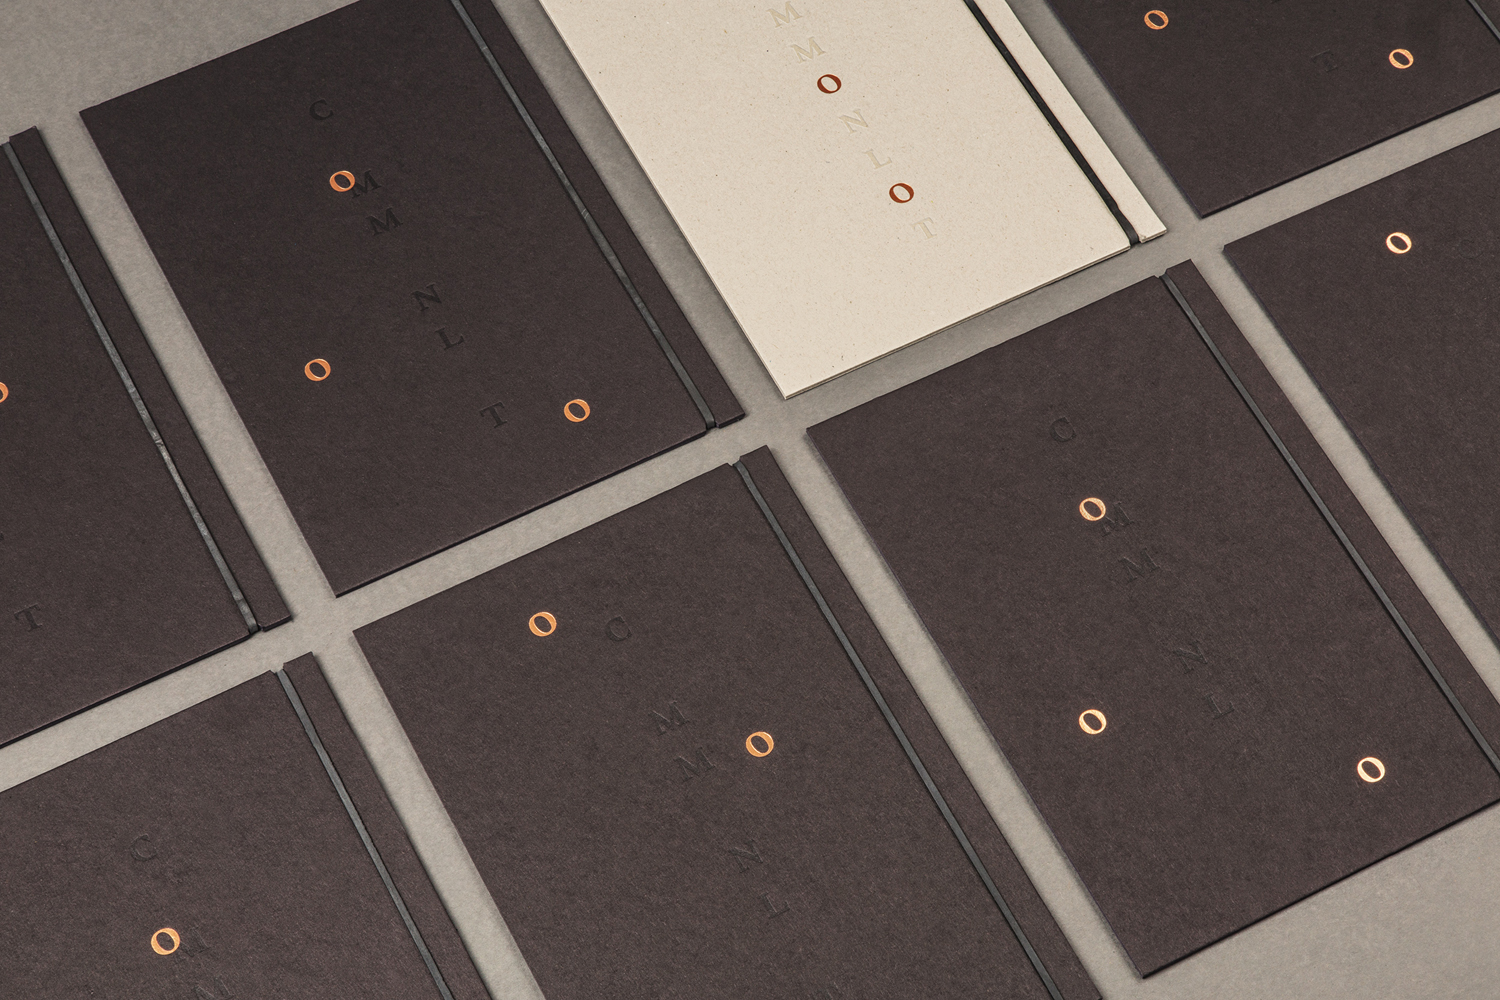 Brand identity and copper block foiled menu covers designed by Perky Bros for Millburn restaurant Common Lot